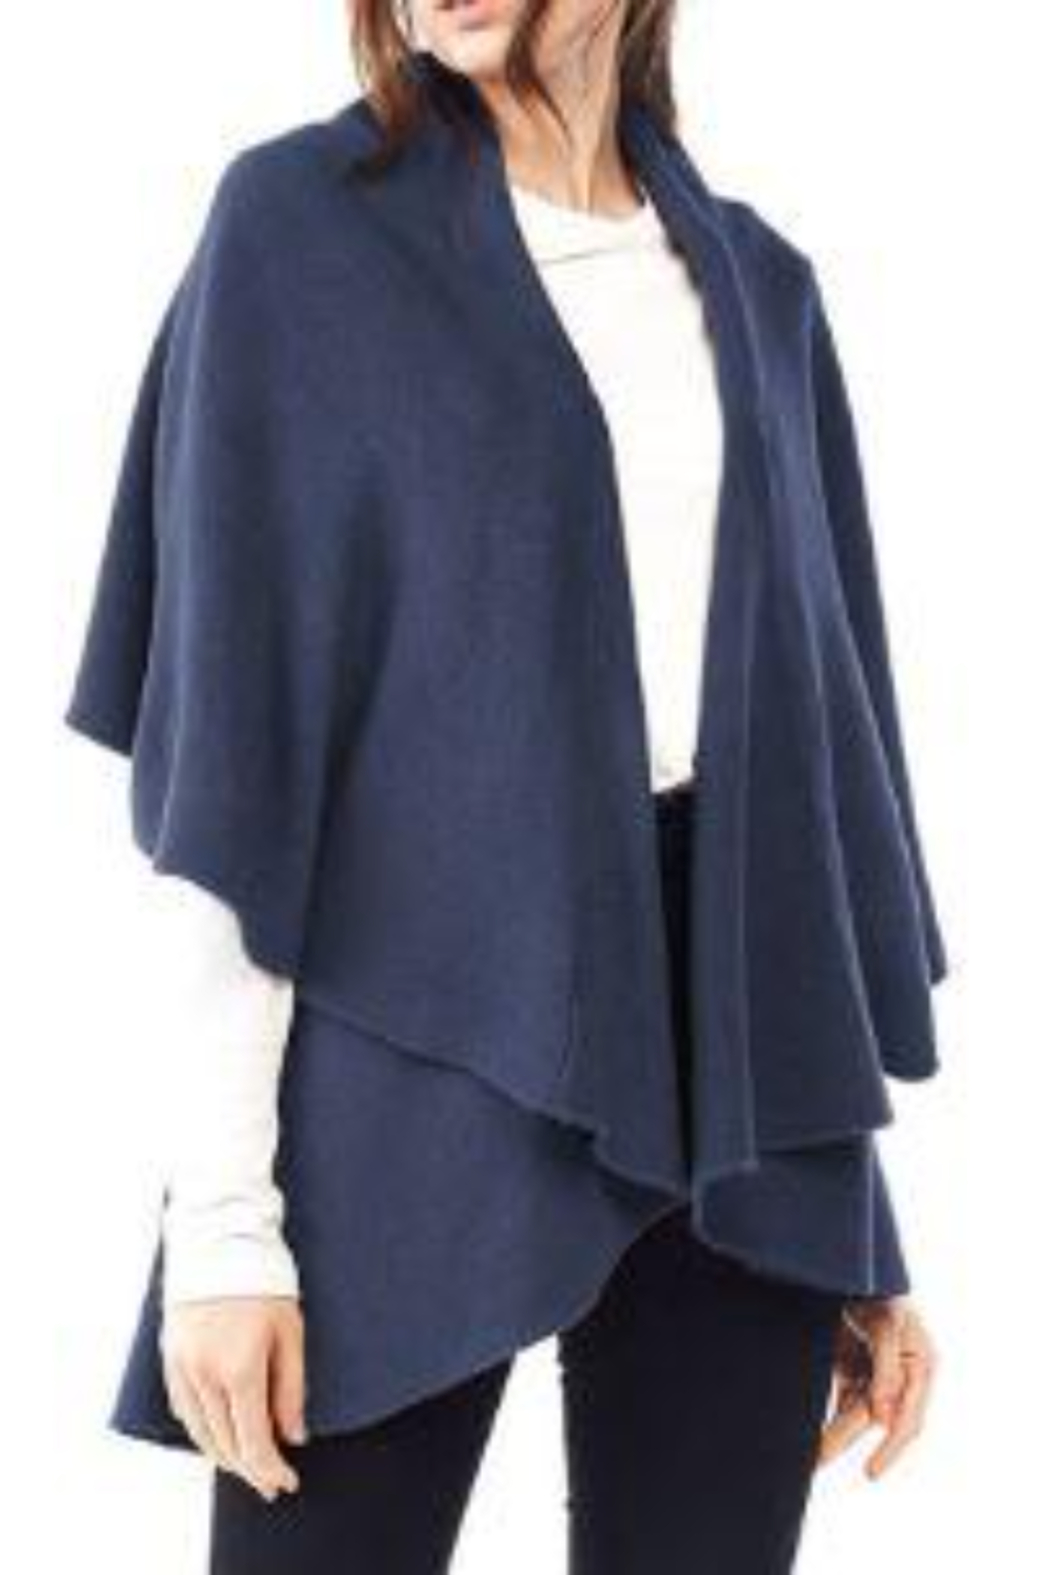 Lookbym Soft wool blend knit shawl poncho vest - Front Cropped Image